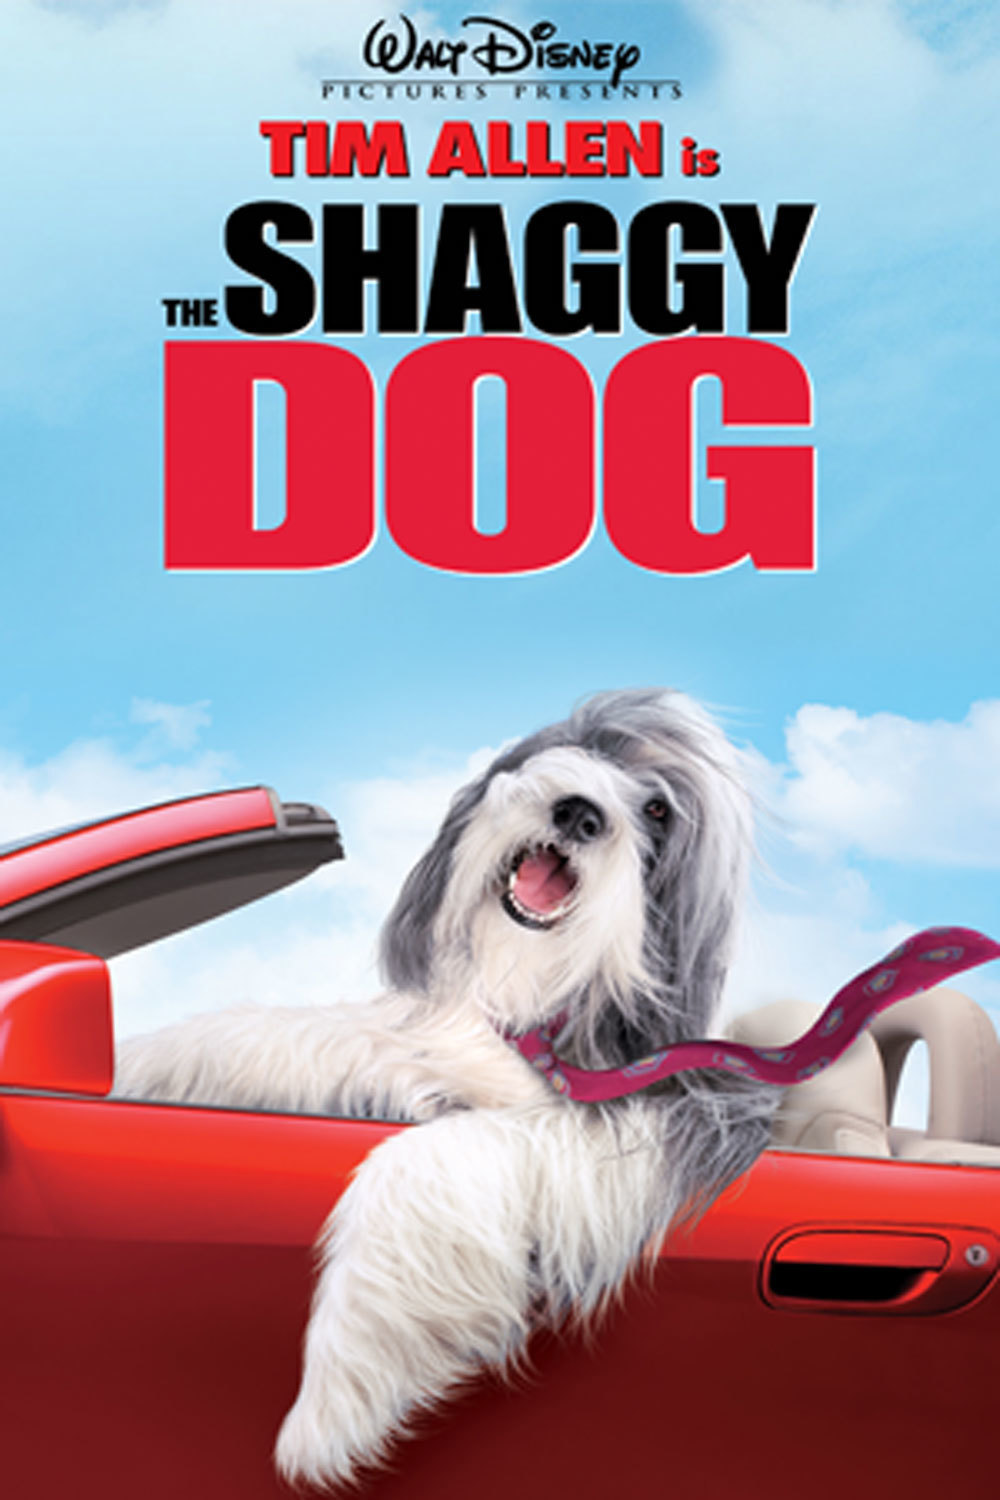 The Shaggy Dog: The 2006 Family Film